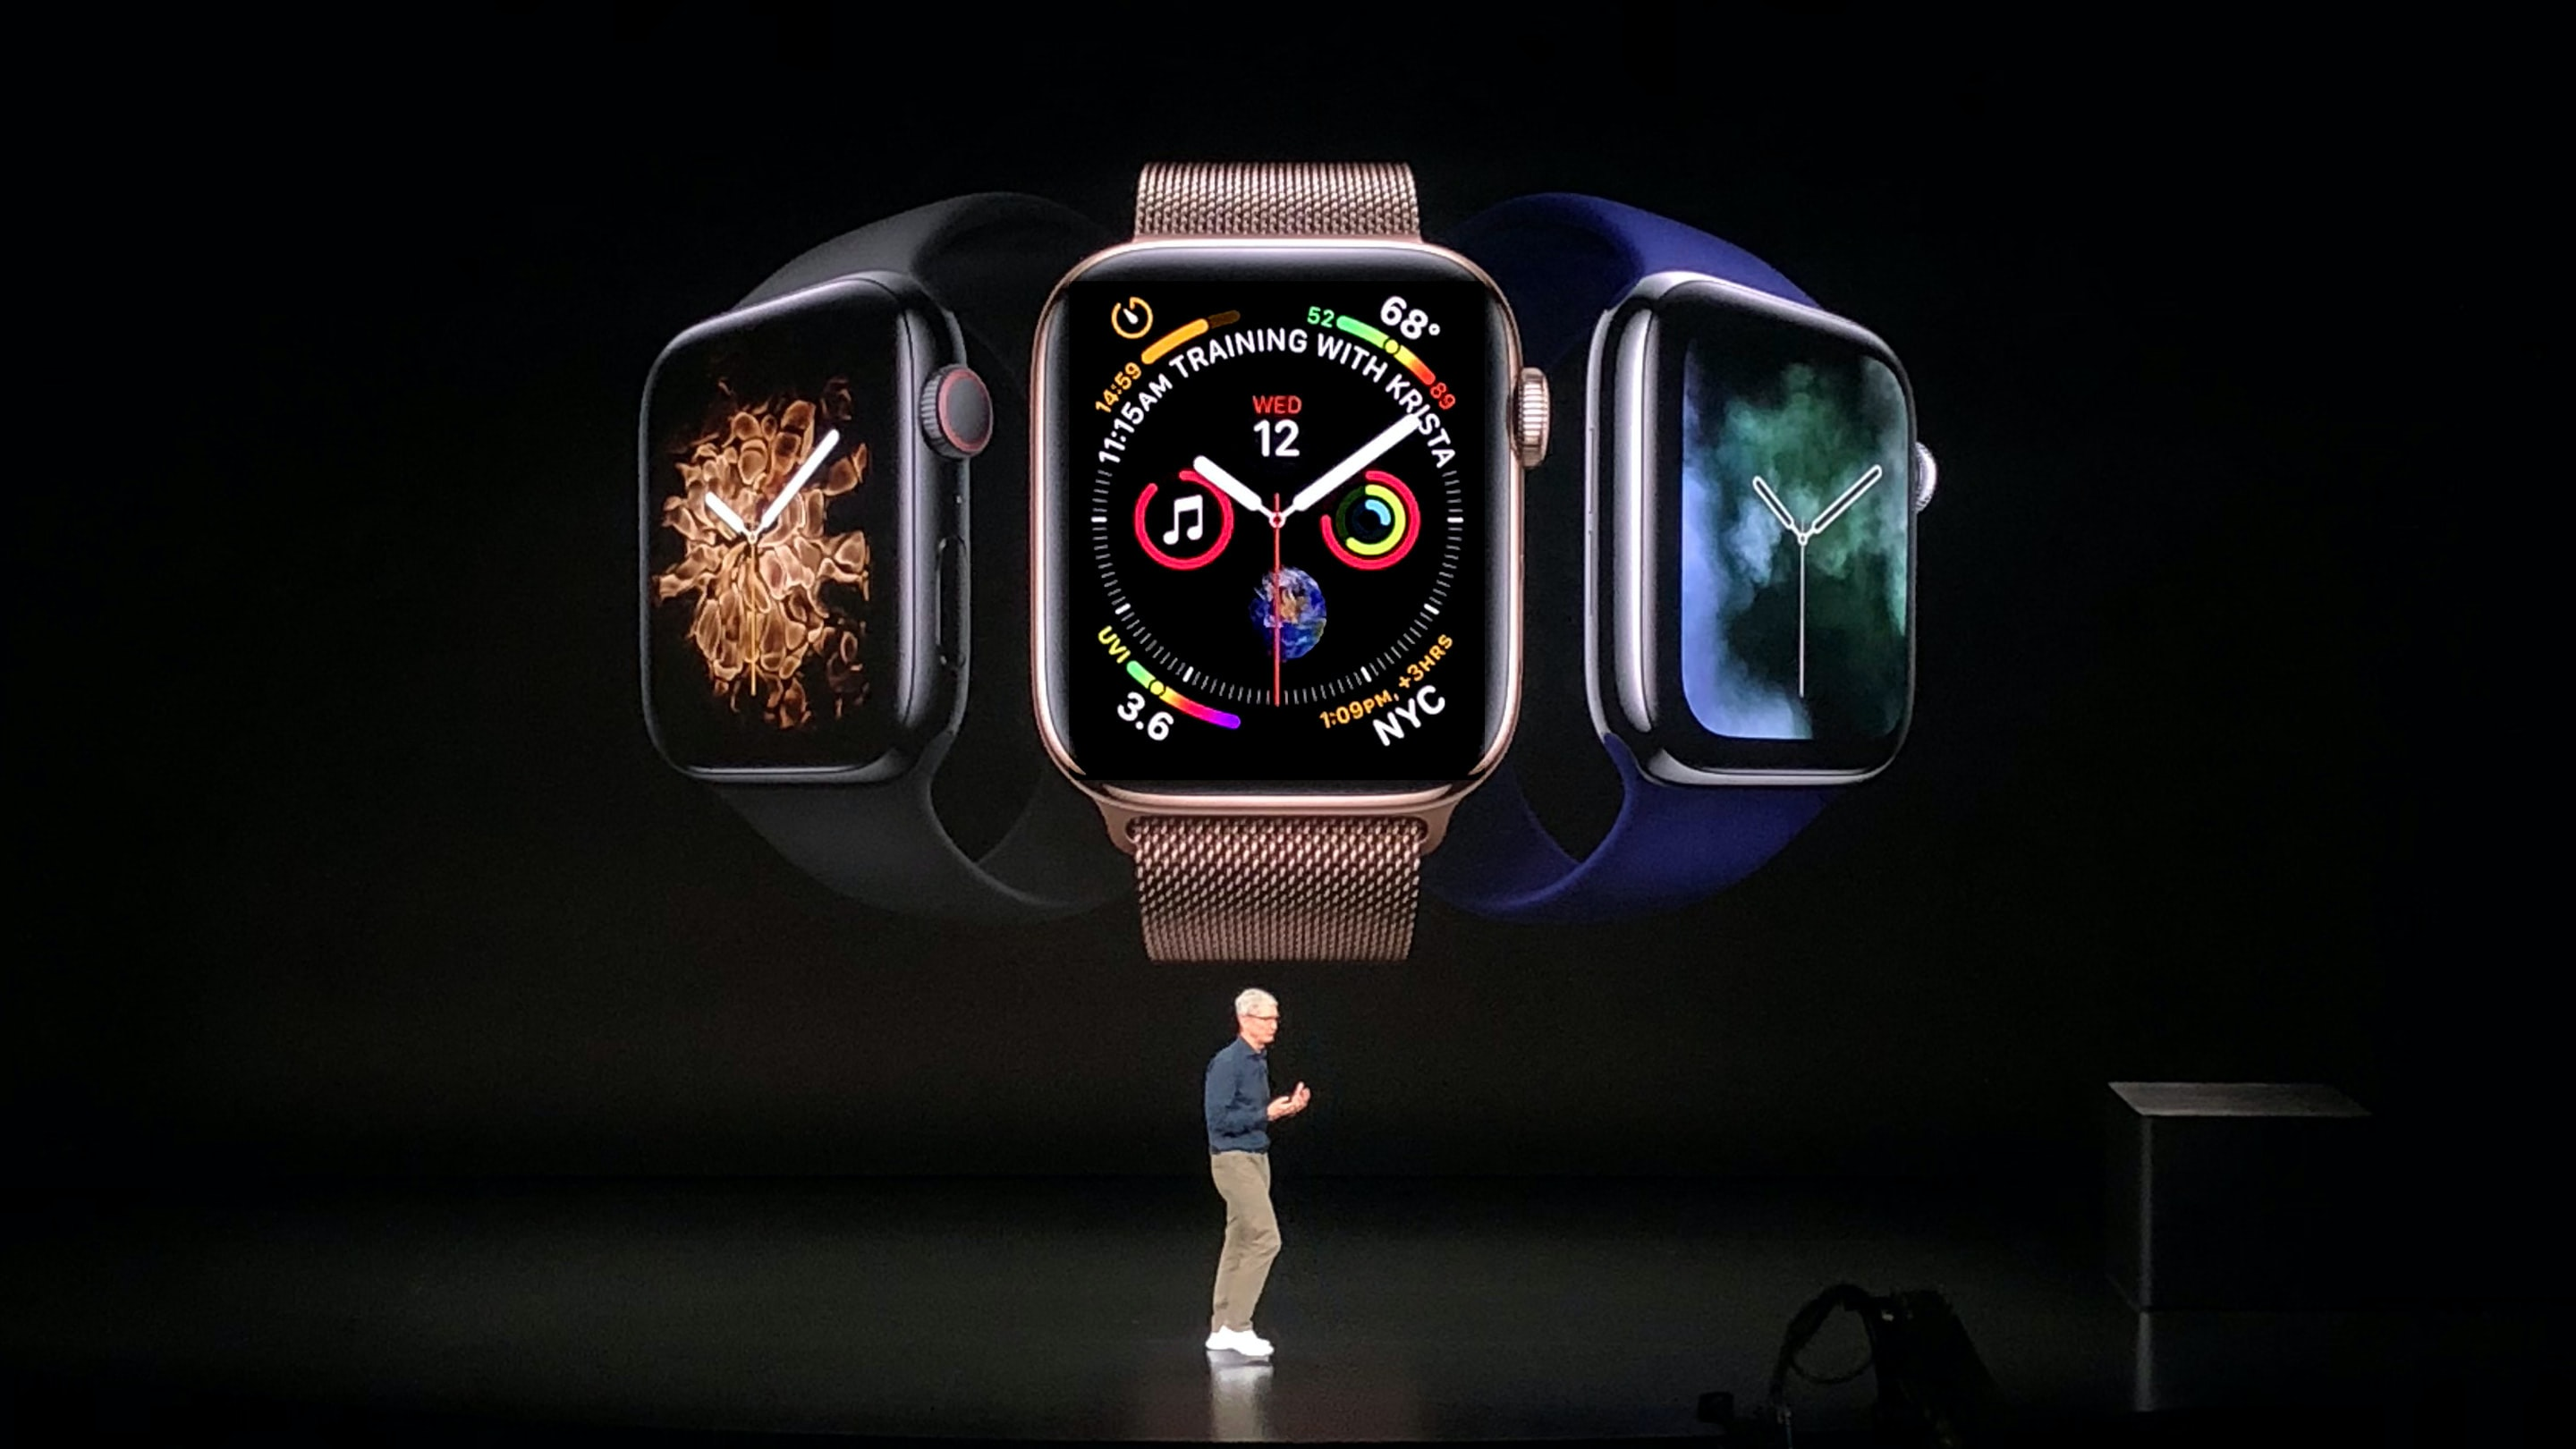 Auto Draft  Introducing: The Apple Watch Series 4 (Live Pics & Pricing) watch hero